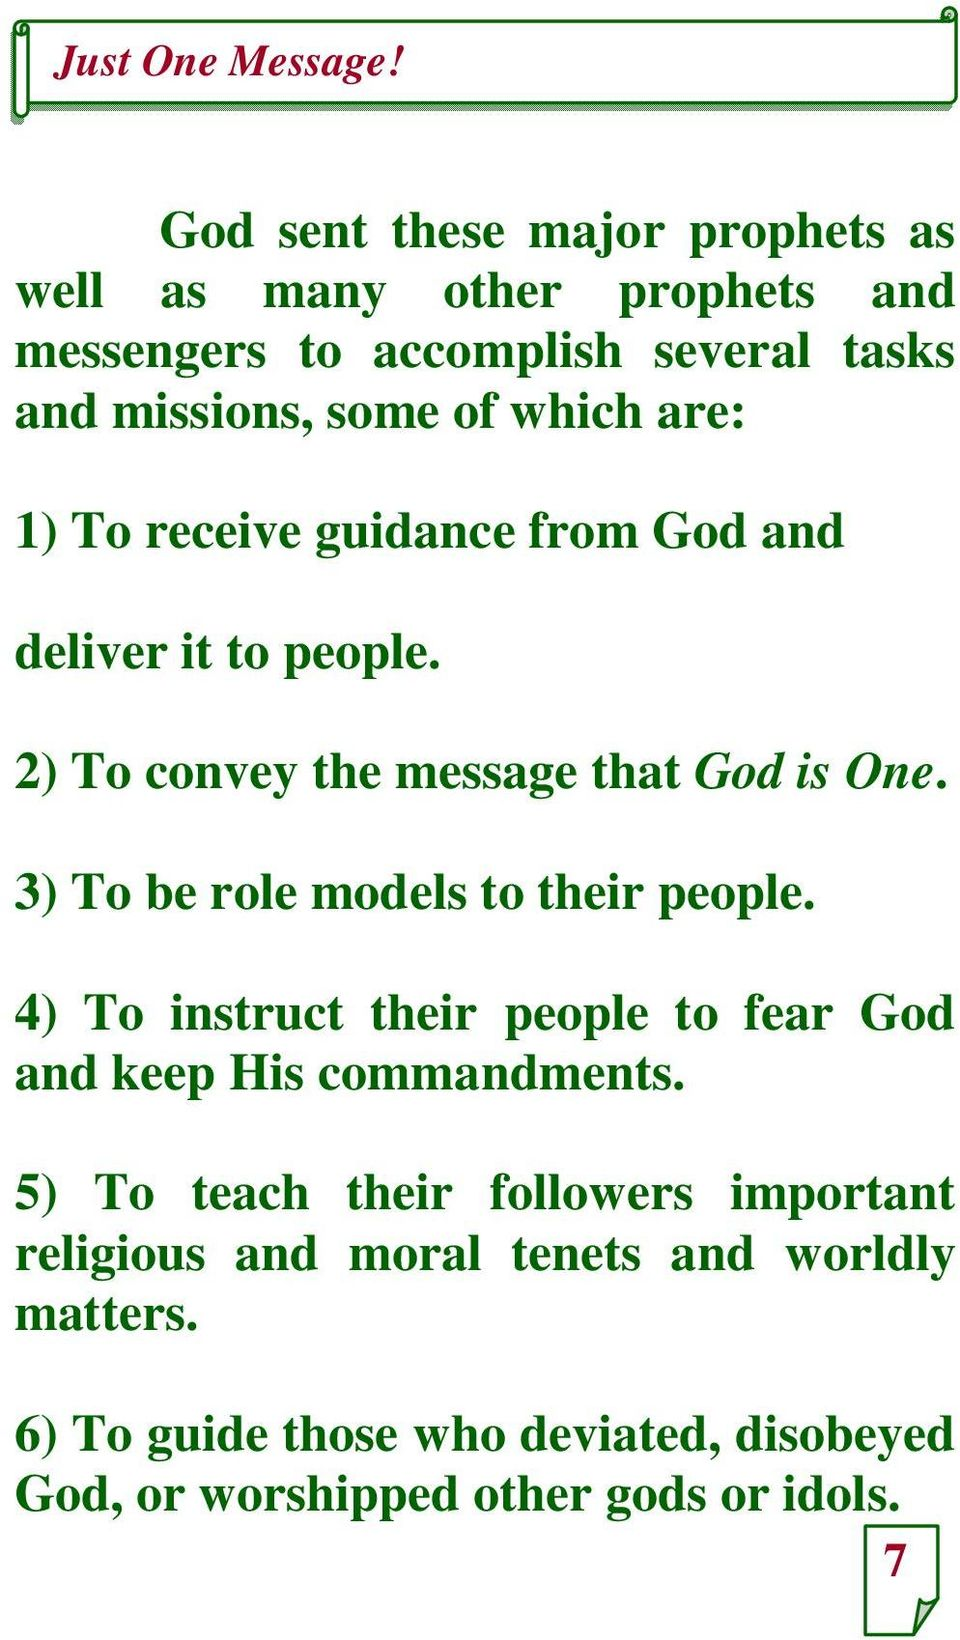 3) To be role models to their people. 4) To instruct their people to fear God and keep His commandments.